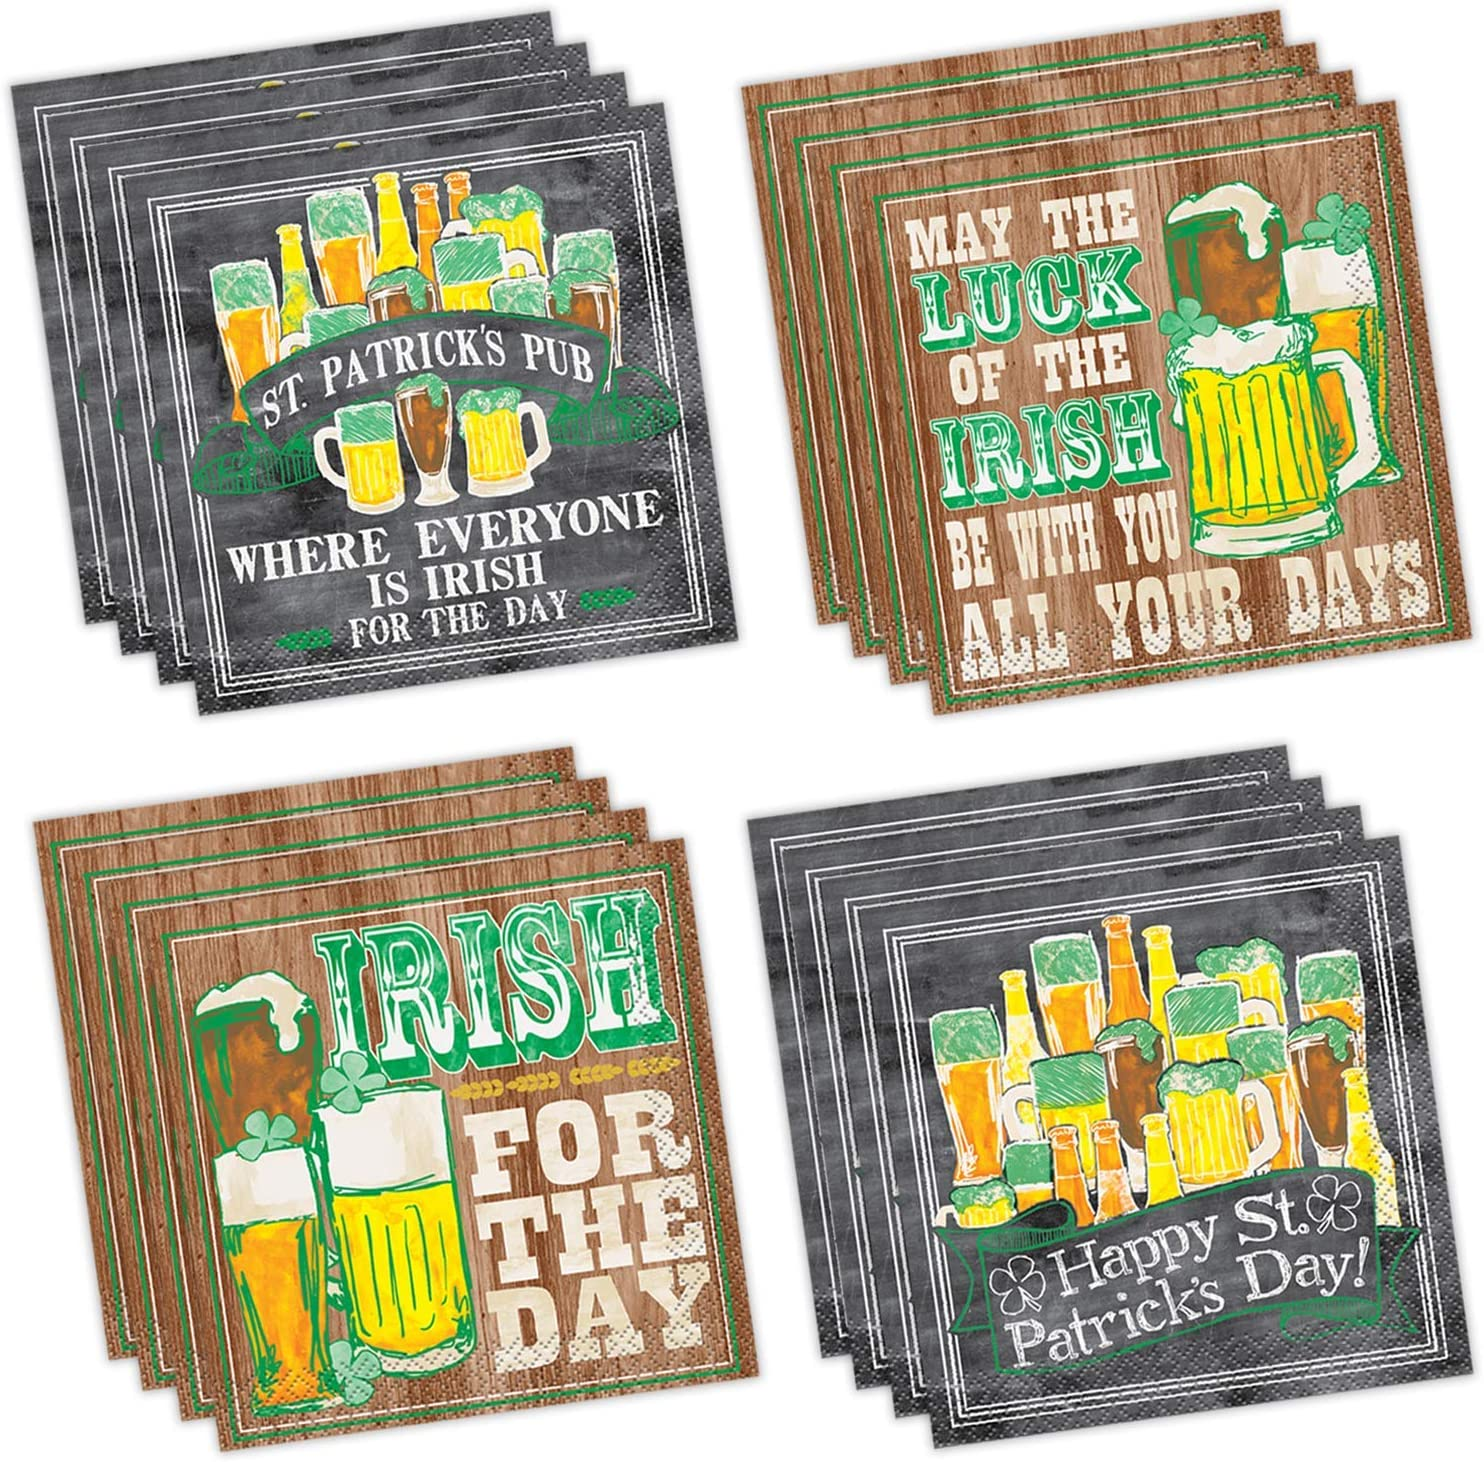 """128 Saint Patrick's Day Beverage Napkins in 4 different Styles - 32 Each style - Perfect funny beverage napkins for any St Patrick celebration, Irish beer festival or cocktail party. Measures 5"""" x 5"""""""